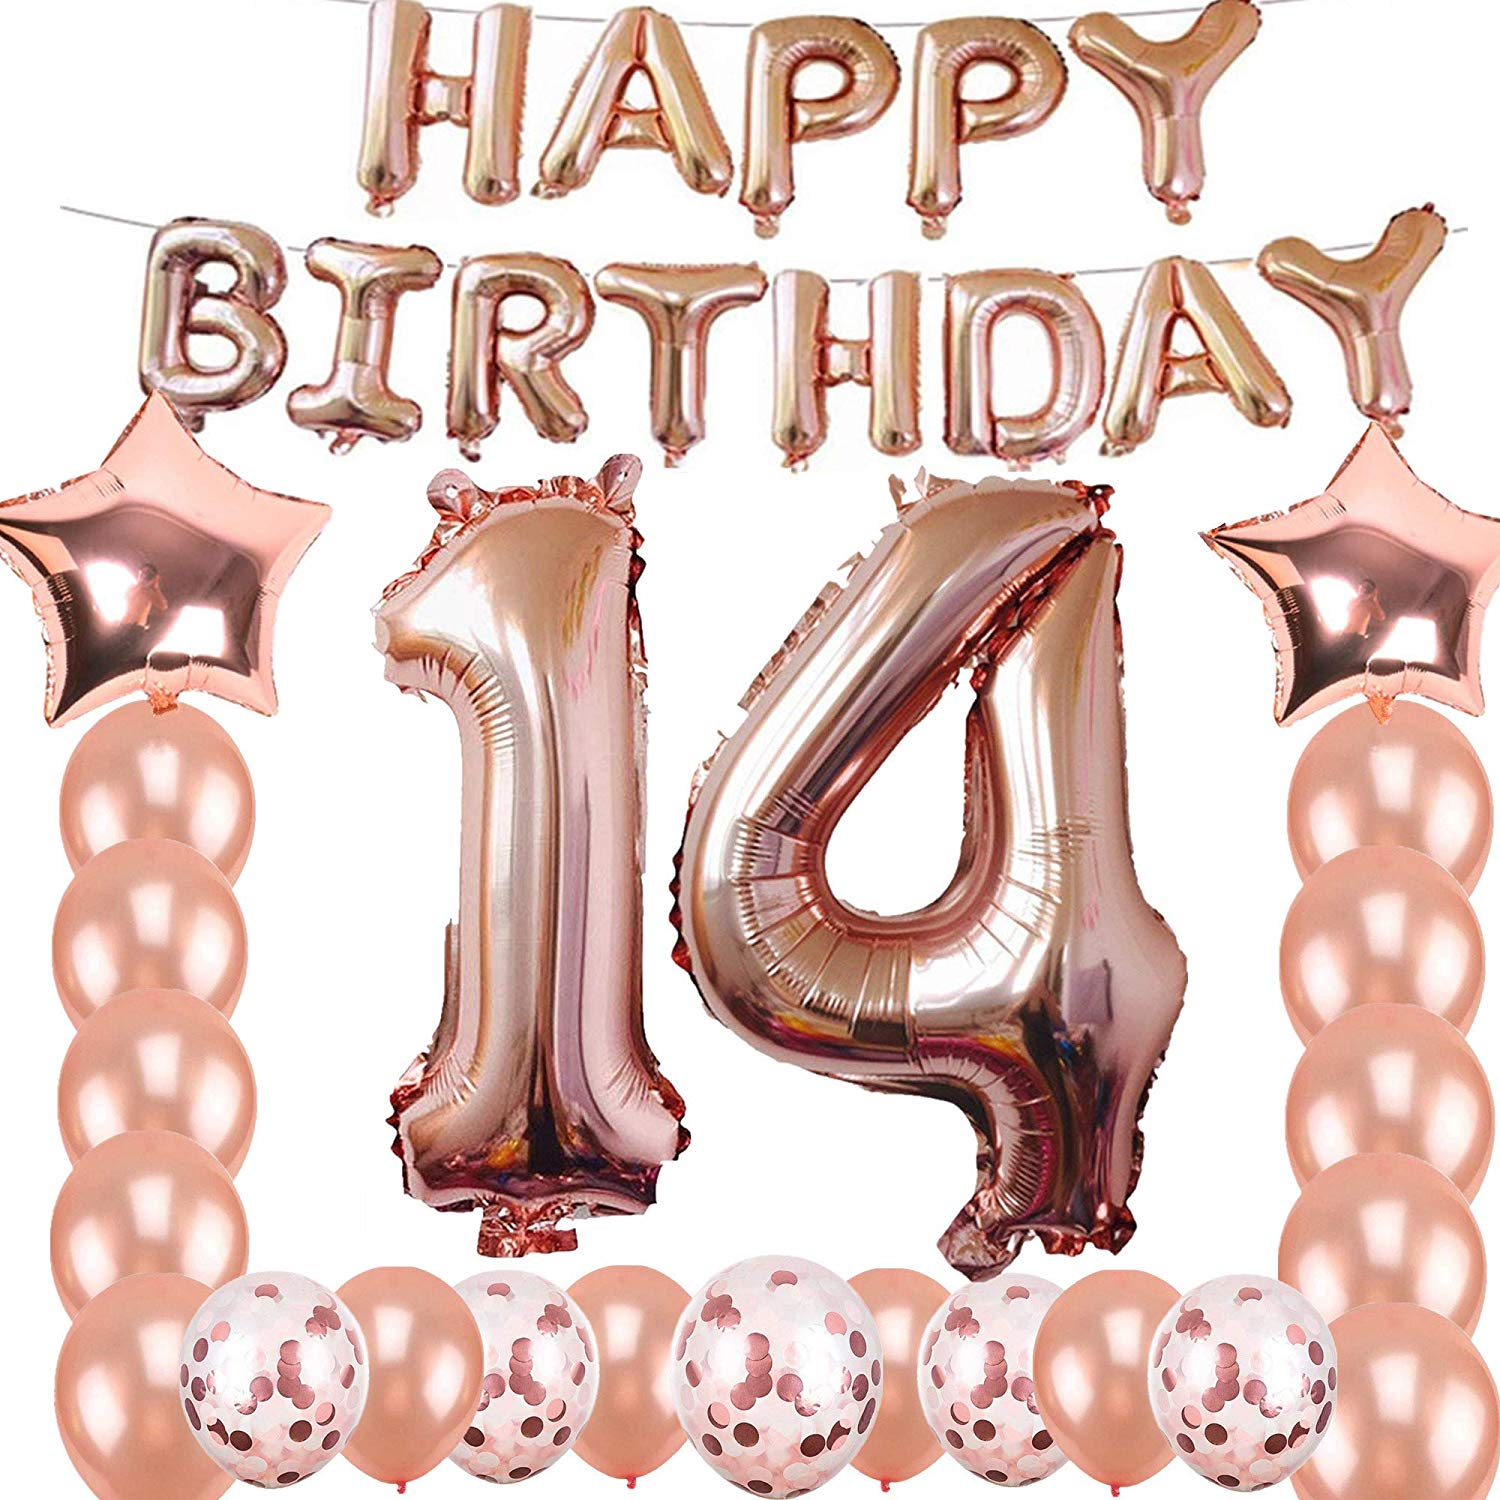 Birthday concern and care clipart clipart royalty free library Amazon.com: 14th Birthday Decorations Party Supplies, Jumbo Rose ... clipart royalty free library